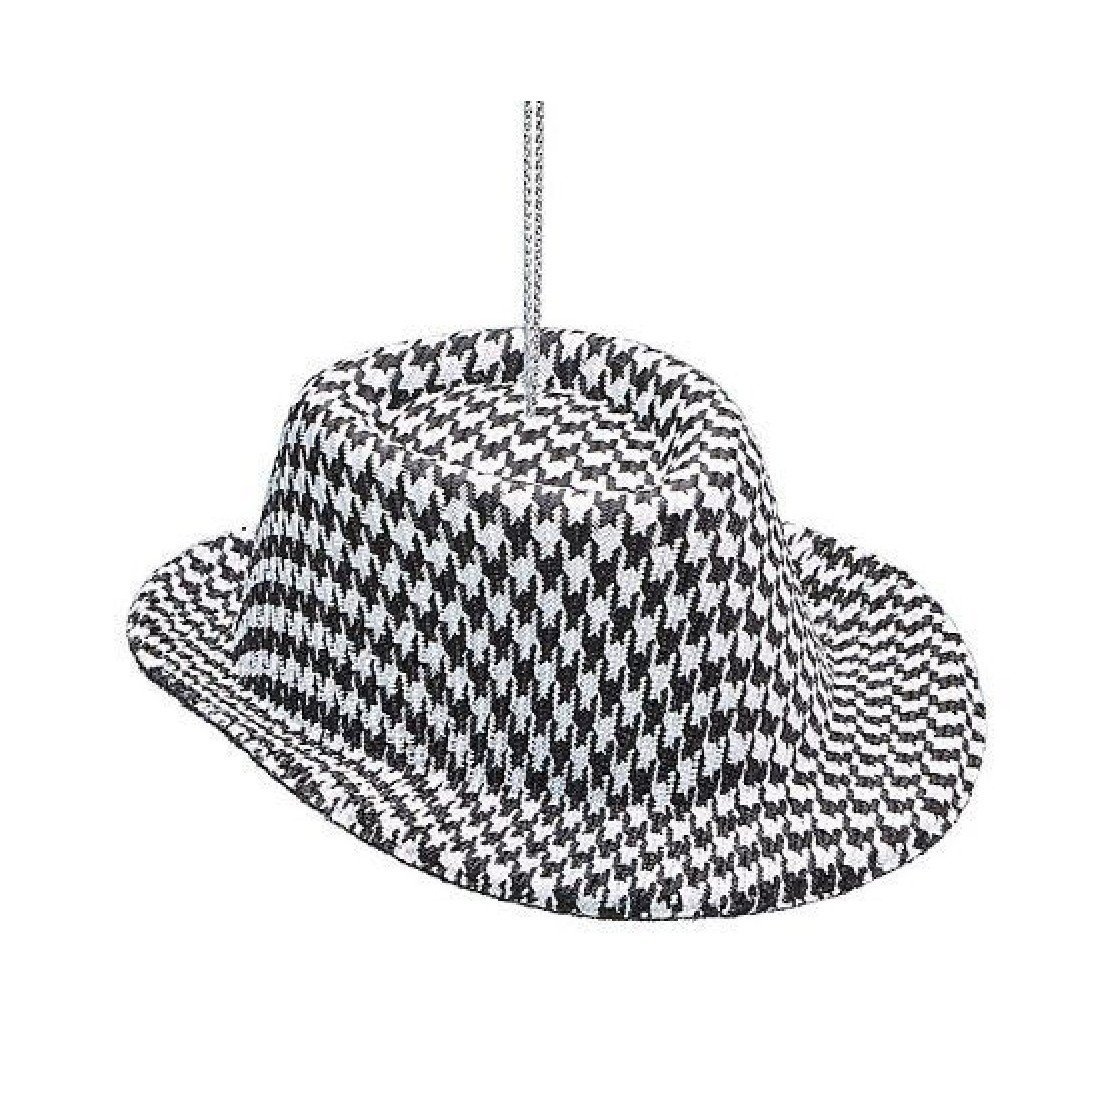 153f5898a Cheap Christmas Fedora, find Christmas Fedora deals on line at ...